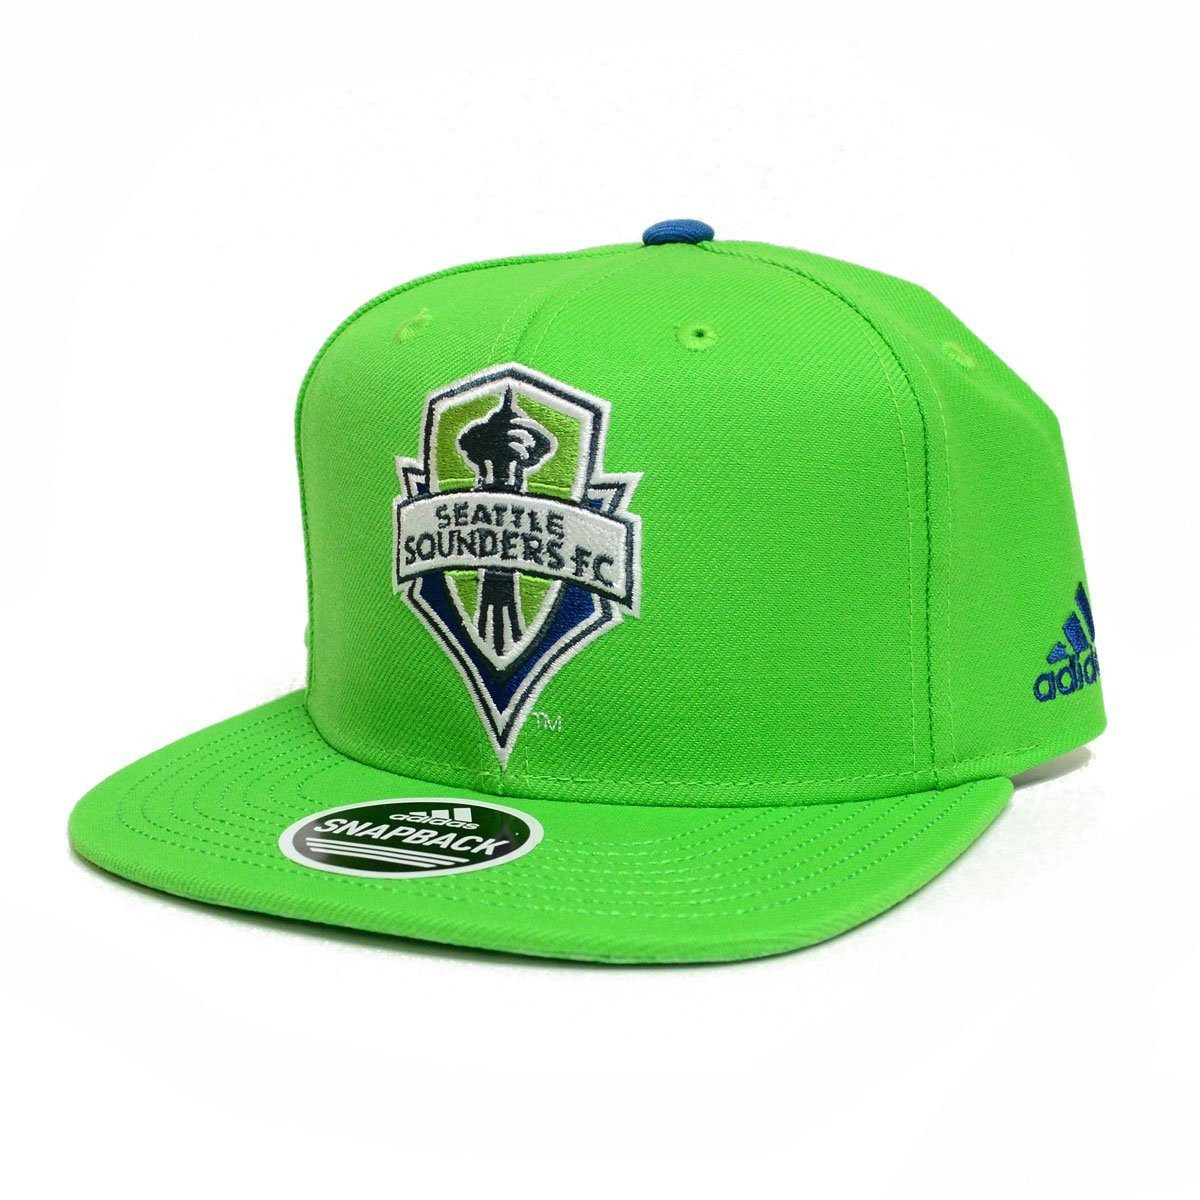 Gorra adidas Seattle Sounders Unitalla Original -   550.00 en ... 0d513ea0bb2